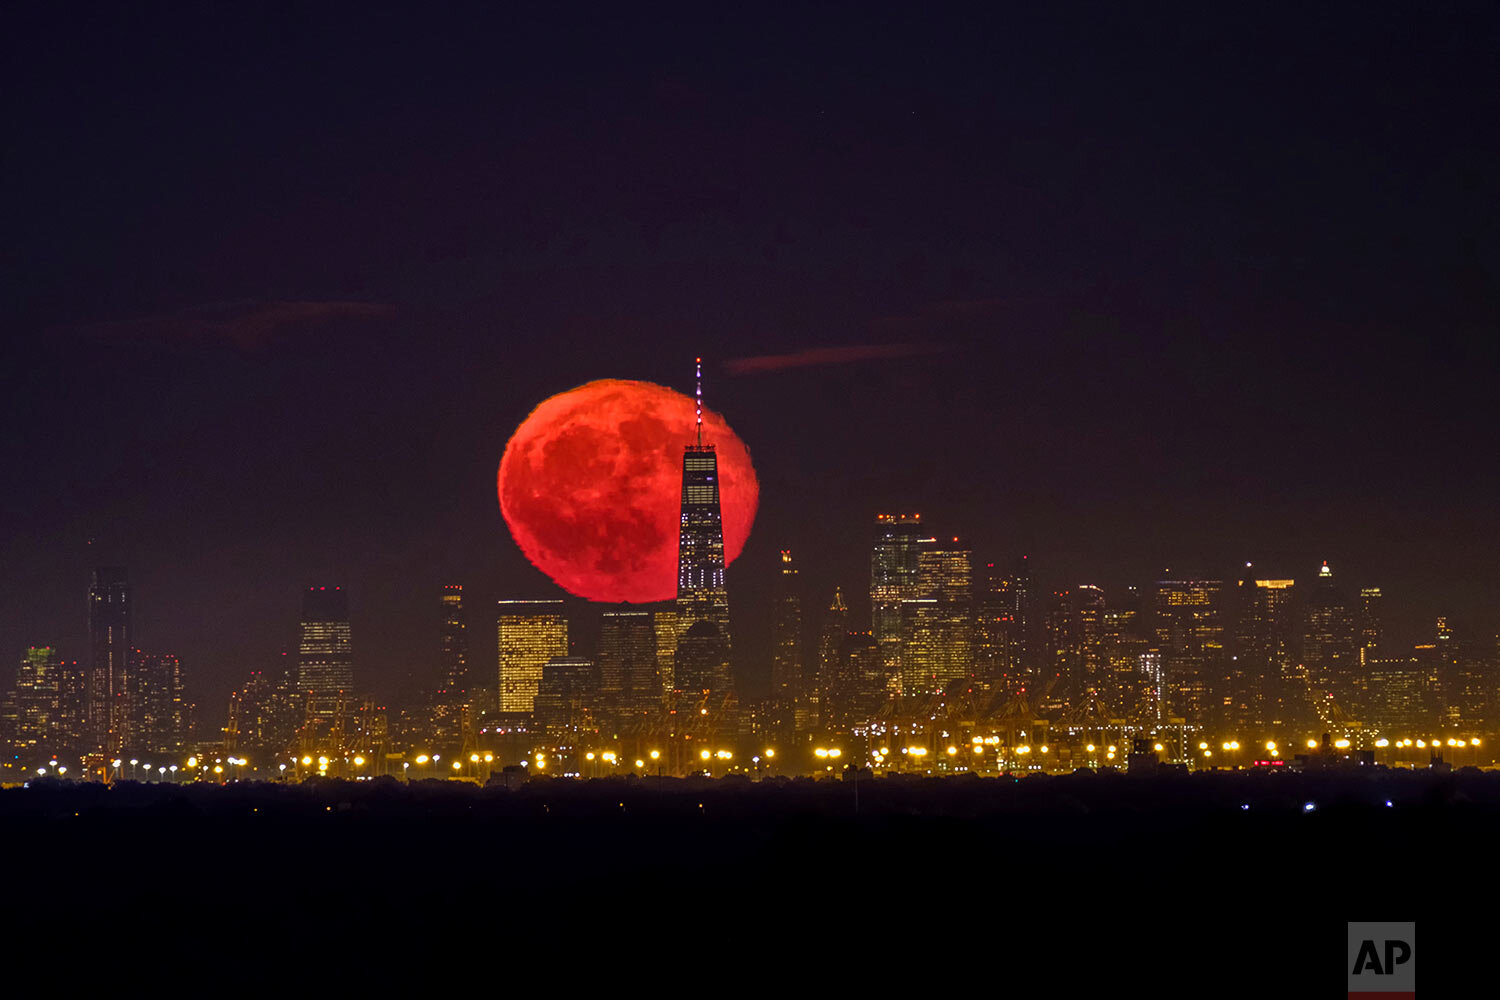 The moon rises behind One World Trade Center on a clear night in Lower Manhattan neighborhood of New York, as seen from Green Brook Township, N.J., Tuesday, Oct. 15, 2019. (AP Photo/J. David Ake)